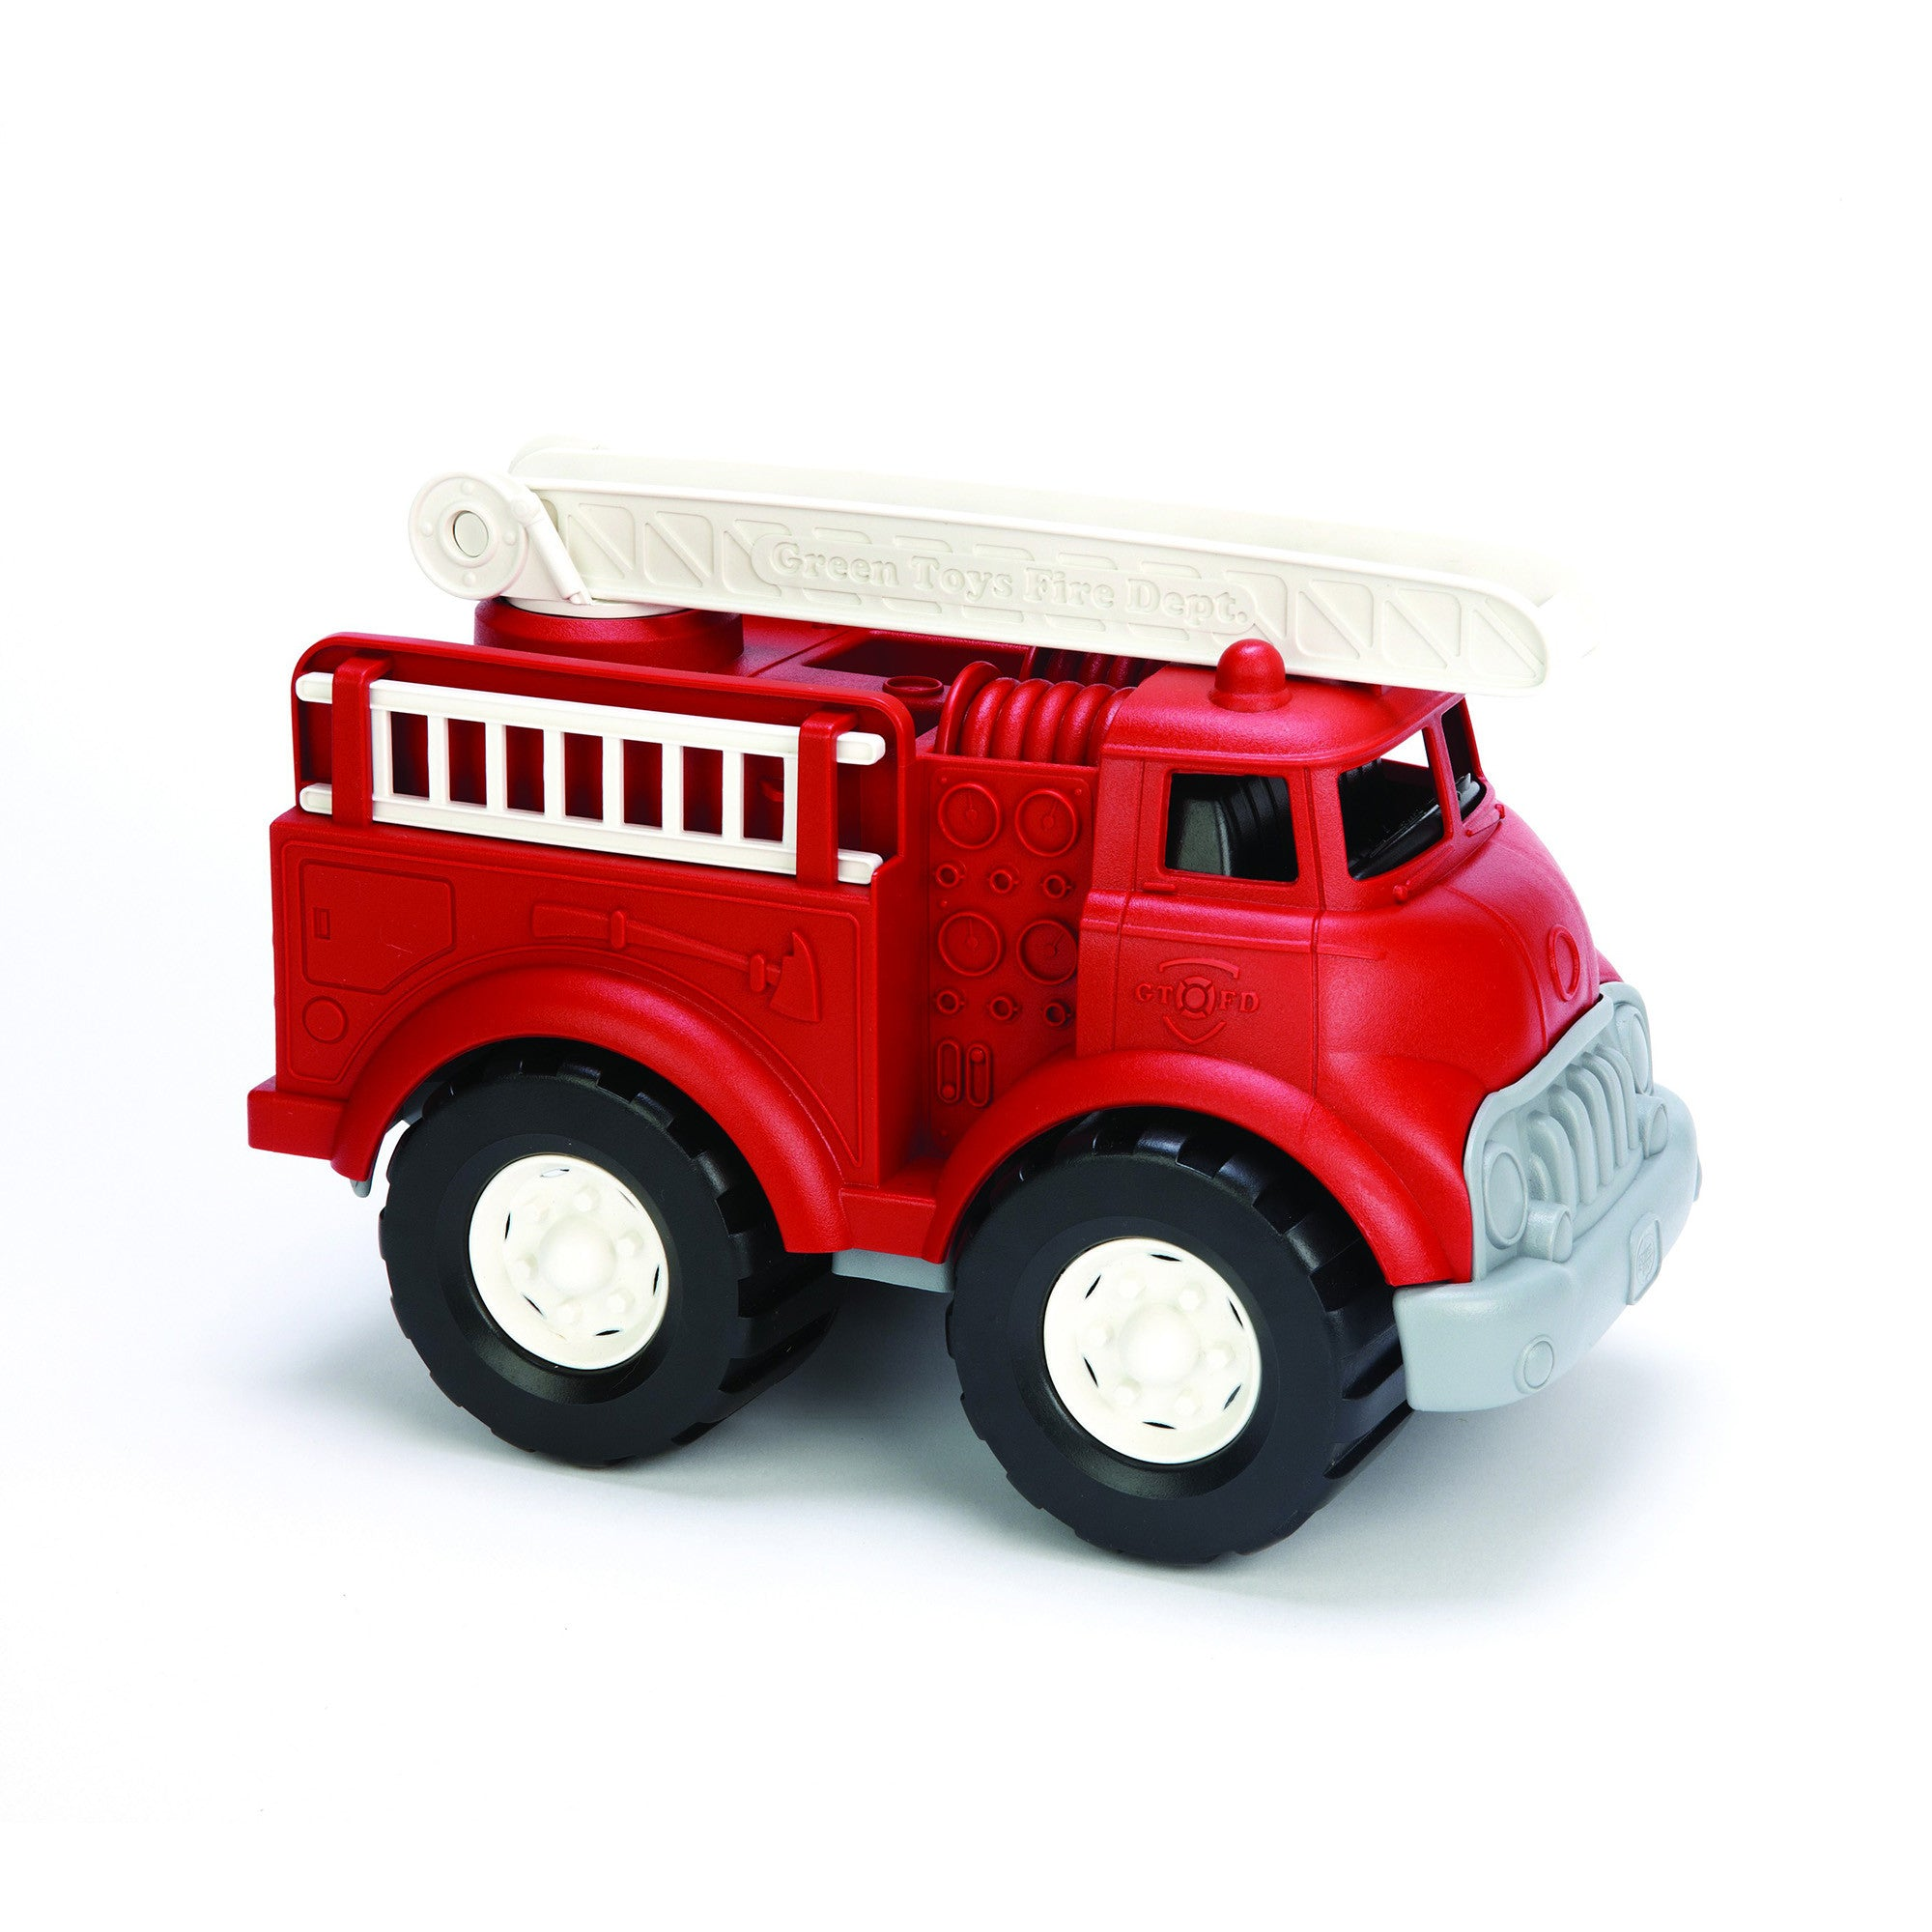 Green Toys Fire Truck Green Toys Play Vehicles at Little Earth Nest Eco Shop